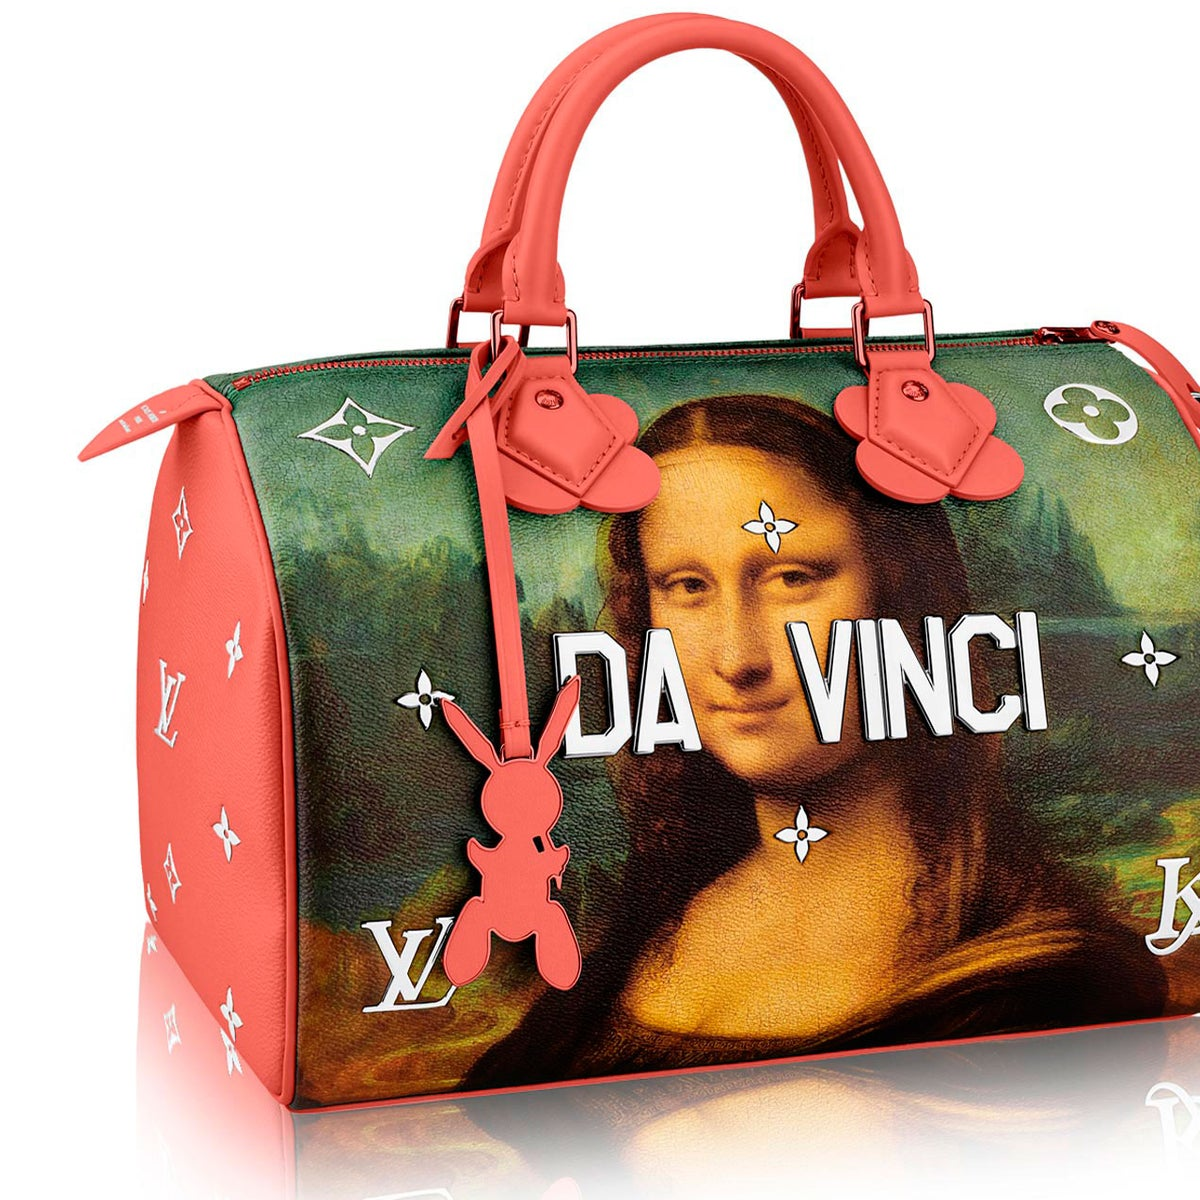 """The Da Vinci bag from the Jeff Koons-Louis Vuitton """"Masters"""" collection"""